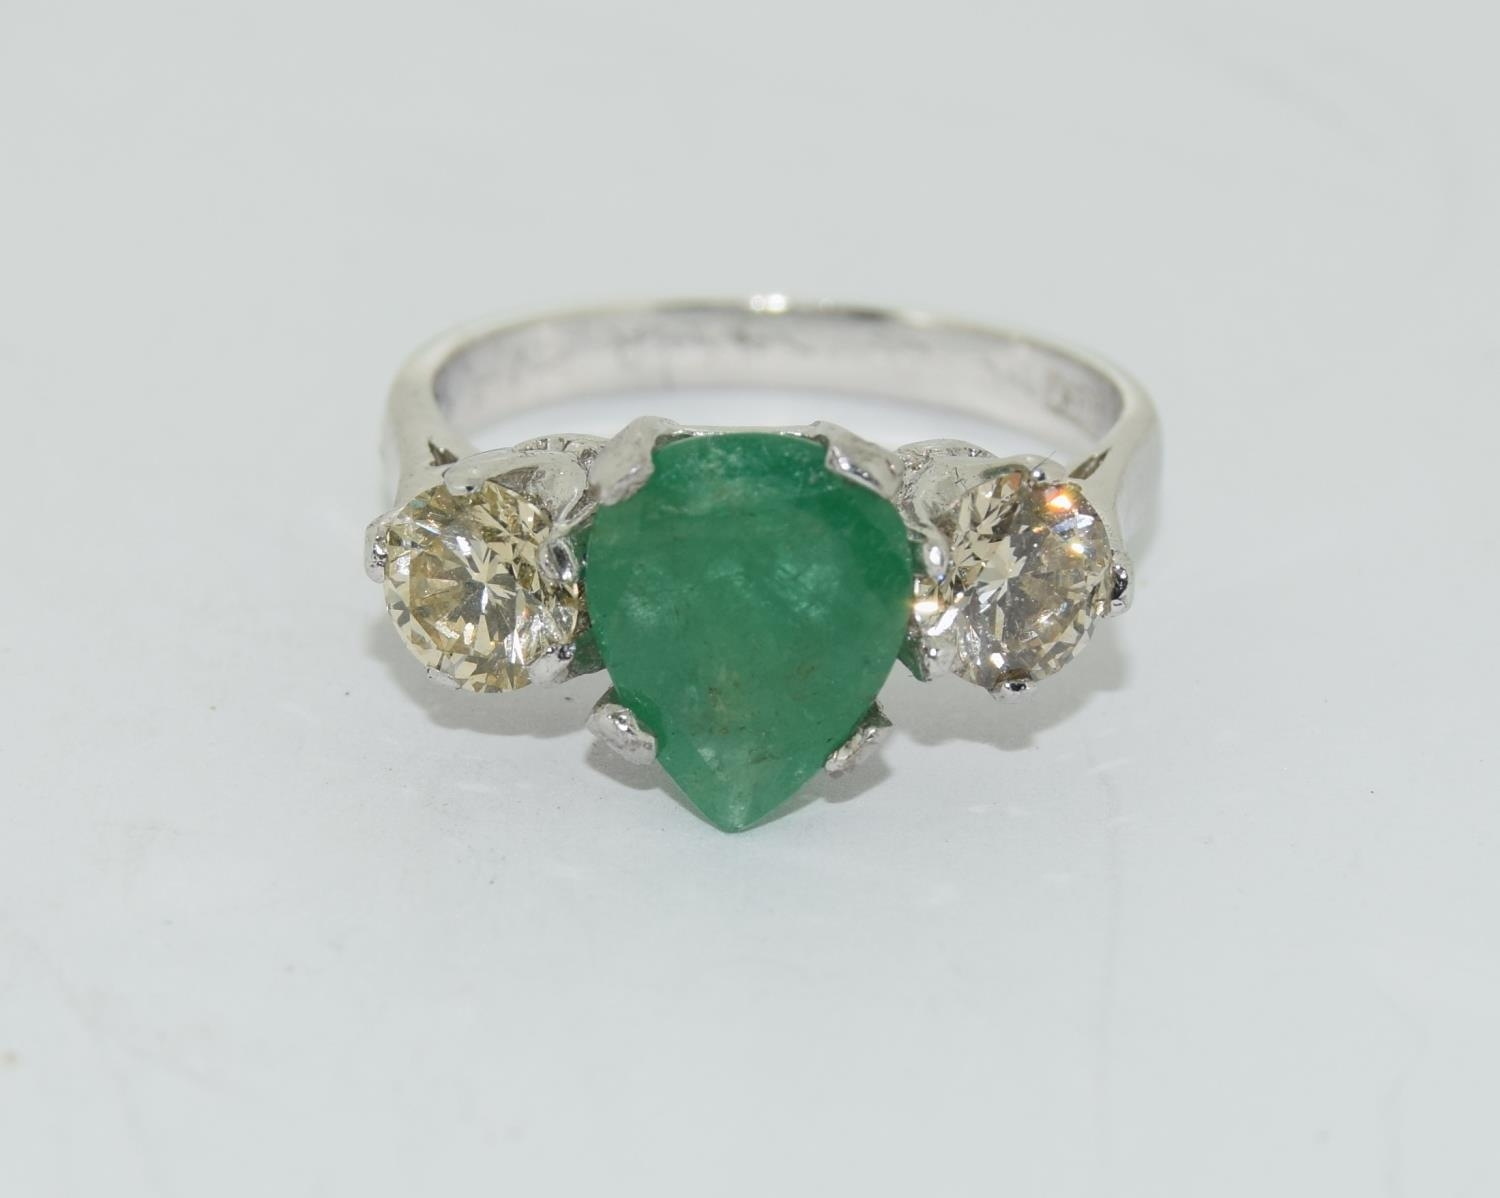 18ct white gold pear shape emerald and diamond ring of approx 1.2ct size L - Image 5 of 5